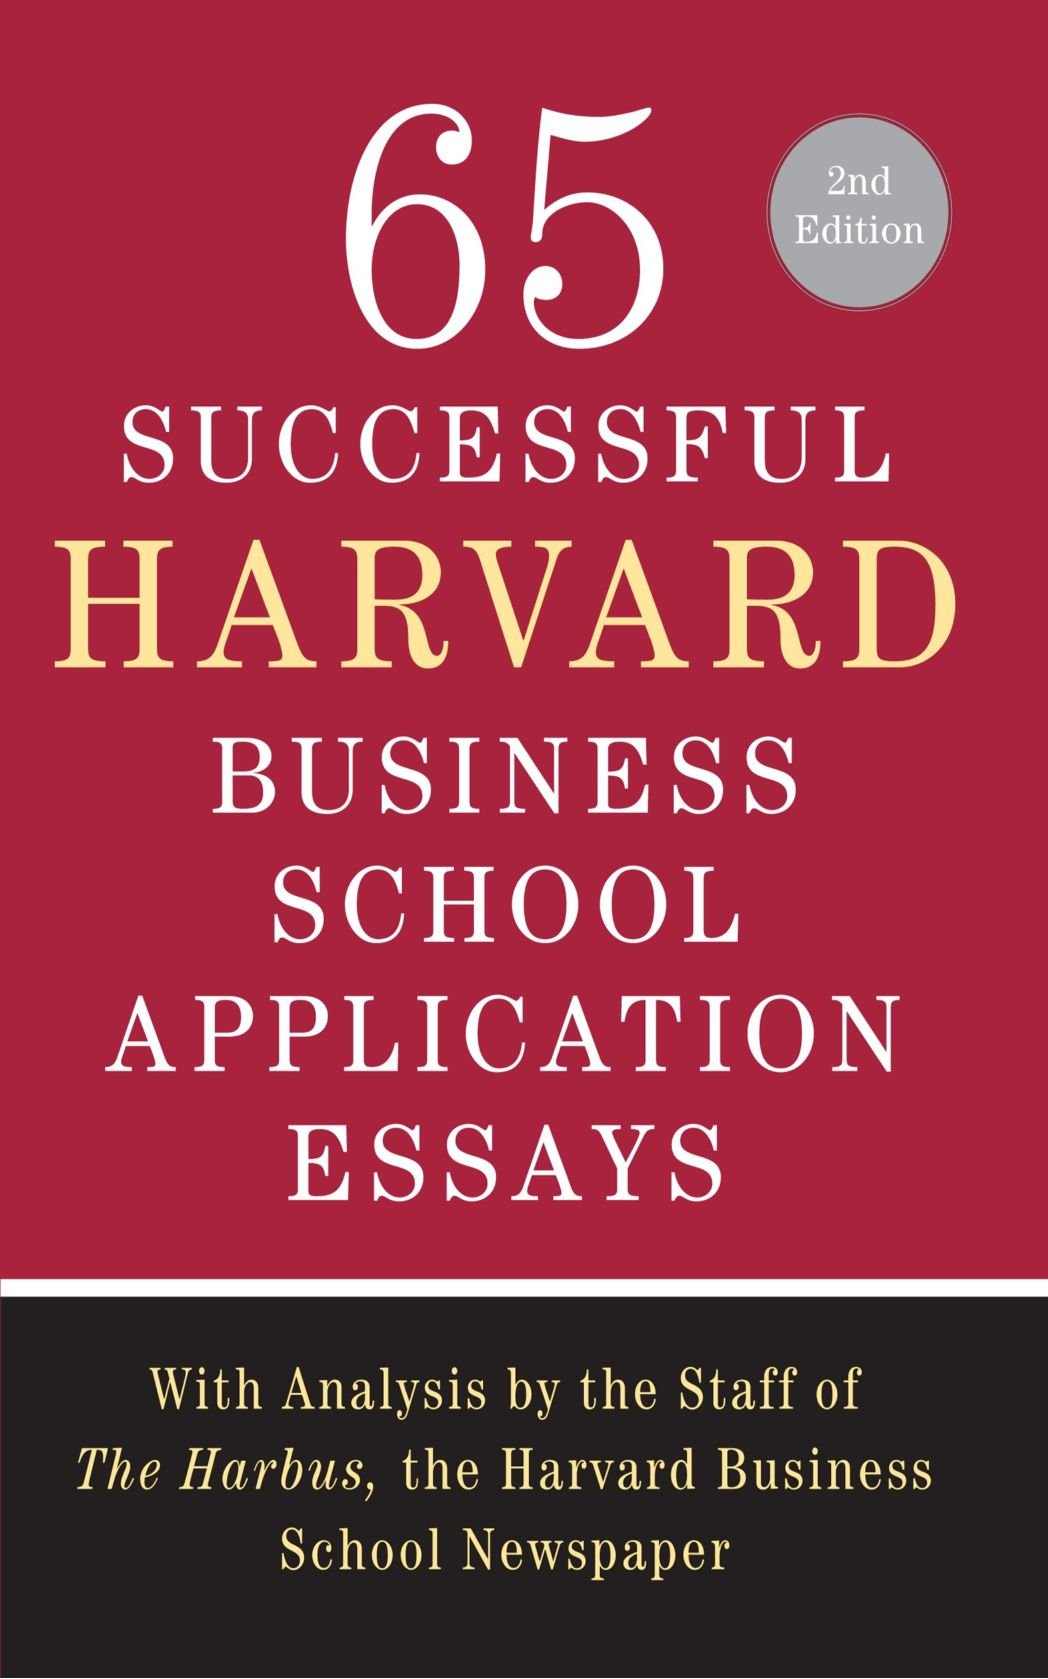 successful harvard business school application essays second 65 successful harvard business school application essays second edition analysis by the staff of the harbus the harvard business school newspaper